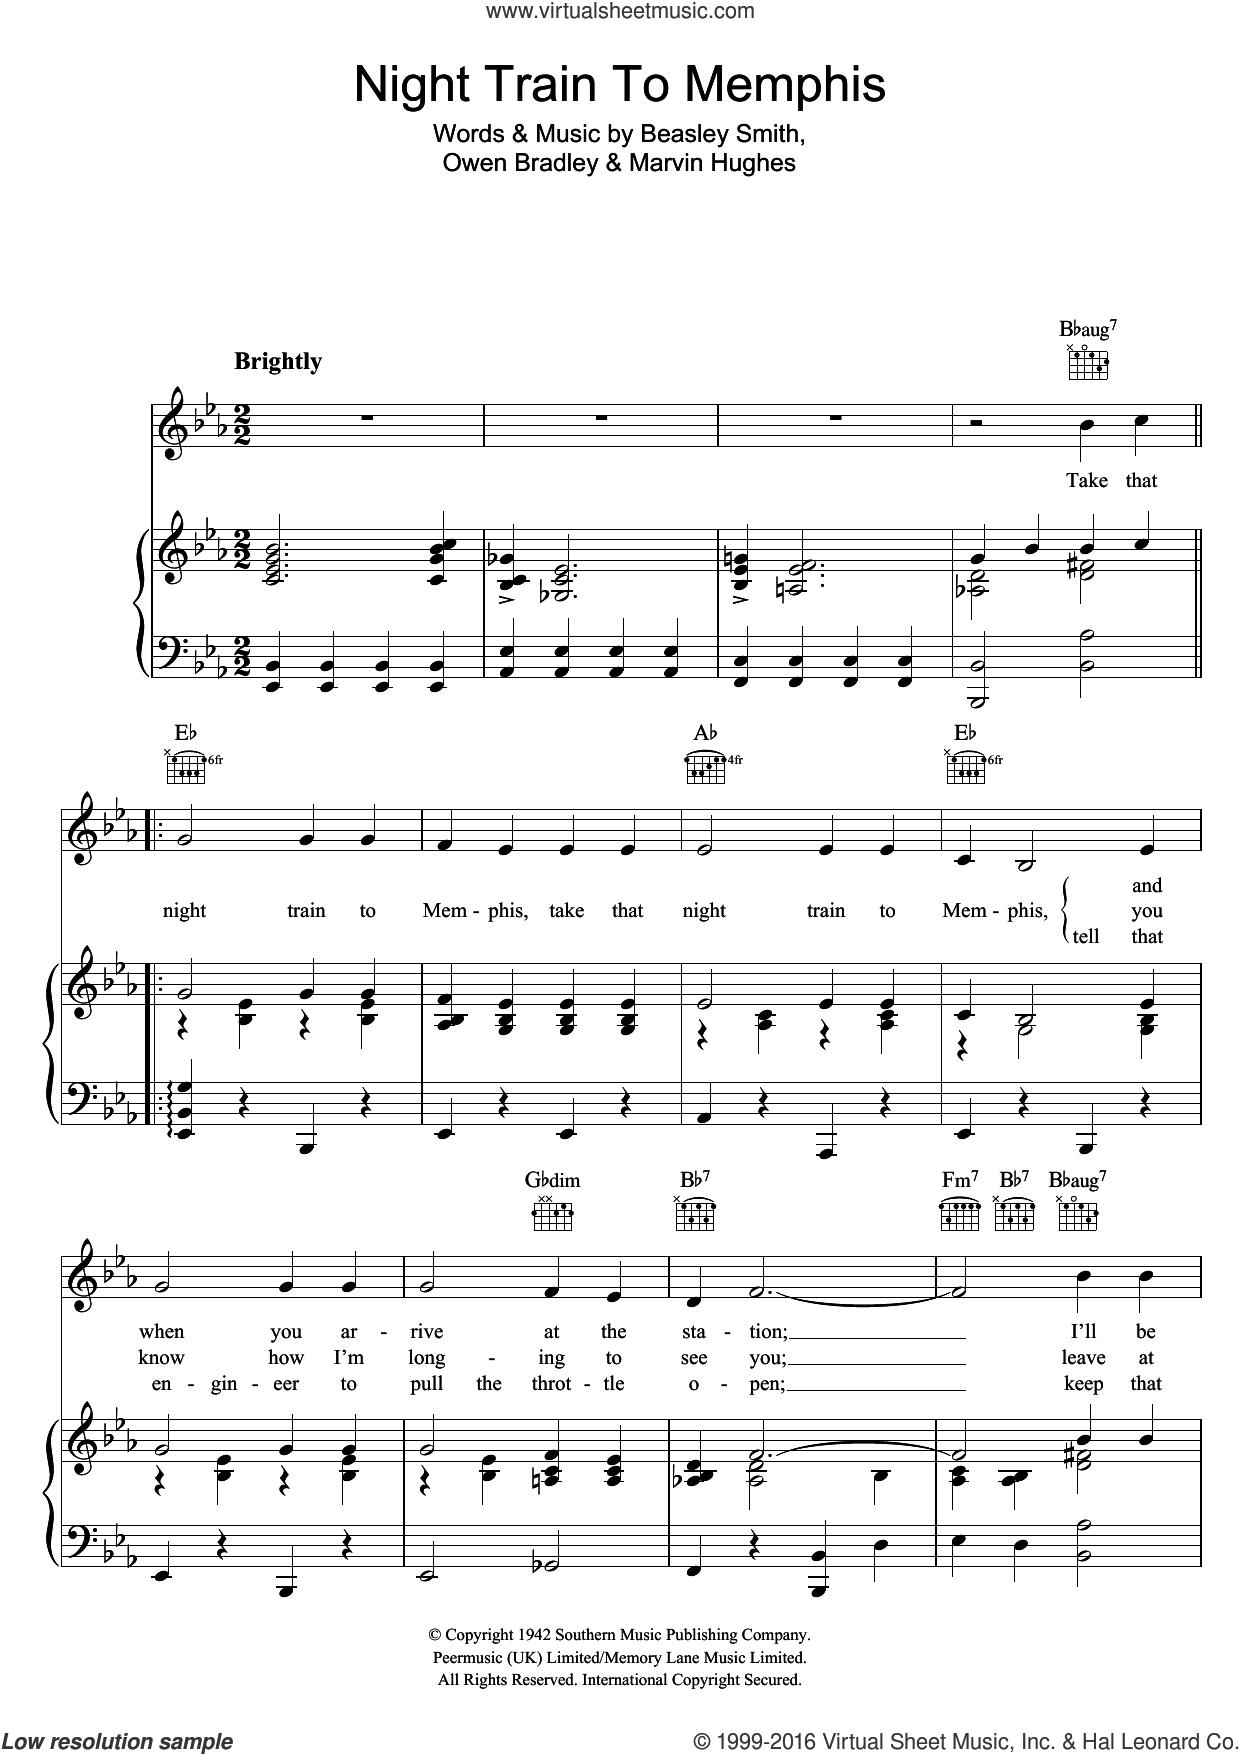 Night Train To Memphis sheet music for voice, piano or guitar by Carl Perkins, Beasley Smith, Marvin Hughes and Owen Bradley, intermediate skill level